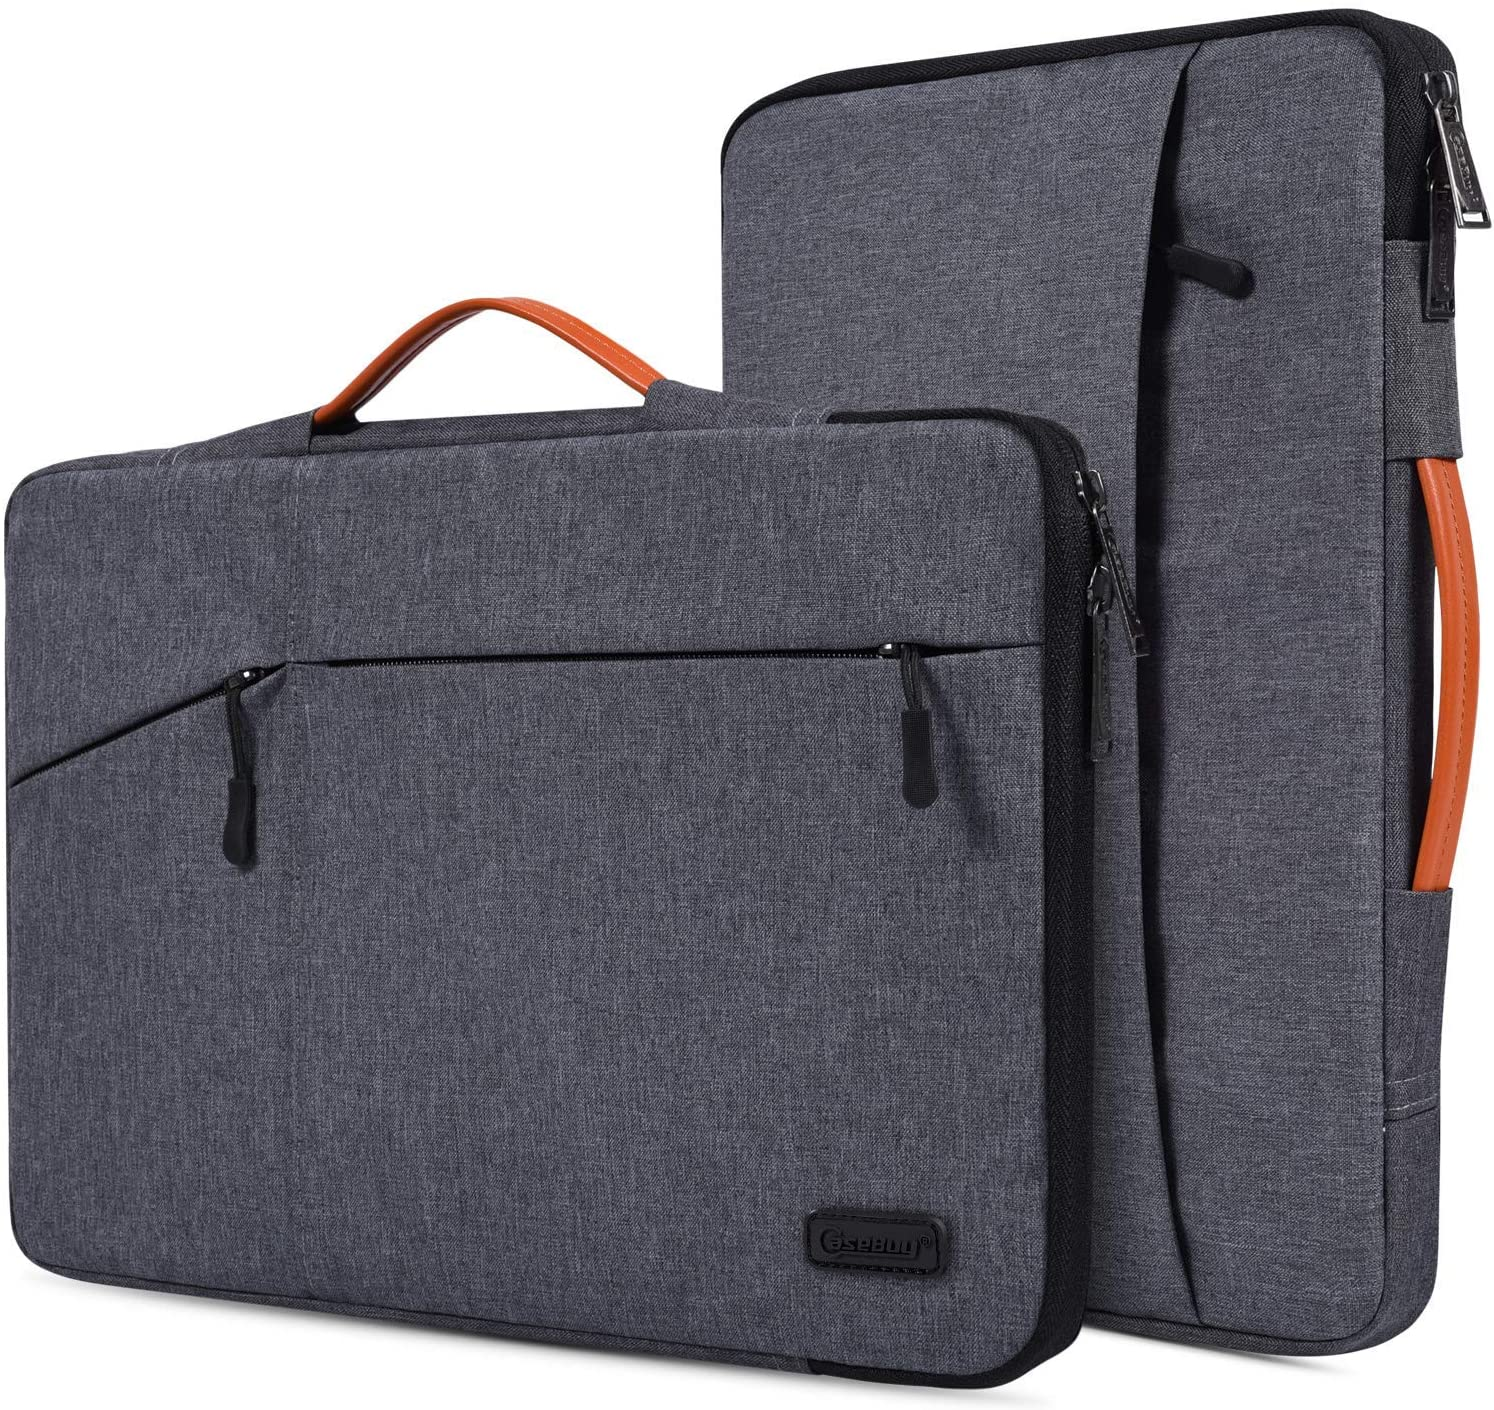 11.6-12.9 Inch Waterpoof Laptop Briefcase Sleeve for Lenovo C330 11.6 Chromebook, Acer 11.6 Chromebook, Samsung Chromebook 3 11.6, HP ASUS DELL Lenovo 11.6 Chromebook Tablet Sleeve Case, Space Grey